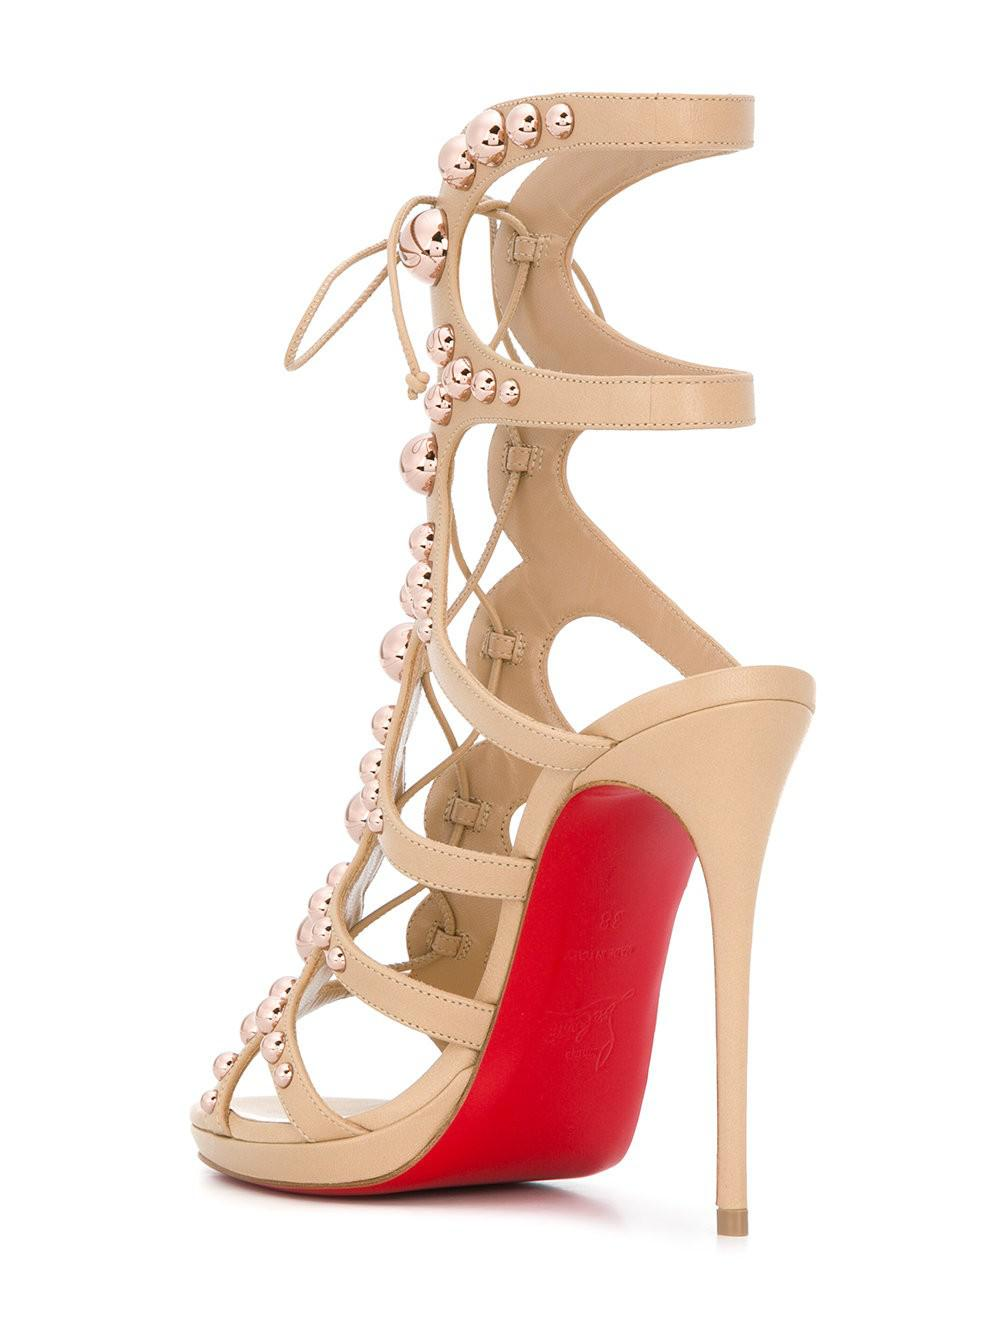 Amazoubille 120 Studded Leather Sandals - Neutral Christian Louboutin Free Shipping Shop For Best Deals Cheap Price Outlet Sale Discount Big Sale Free Shipping Top Quality Gcz1AZ